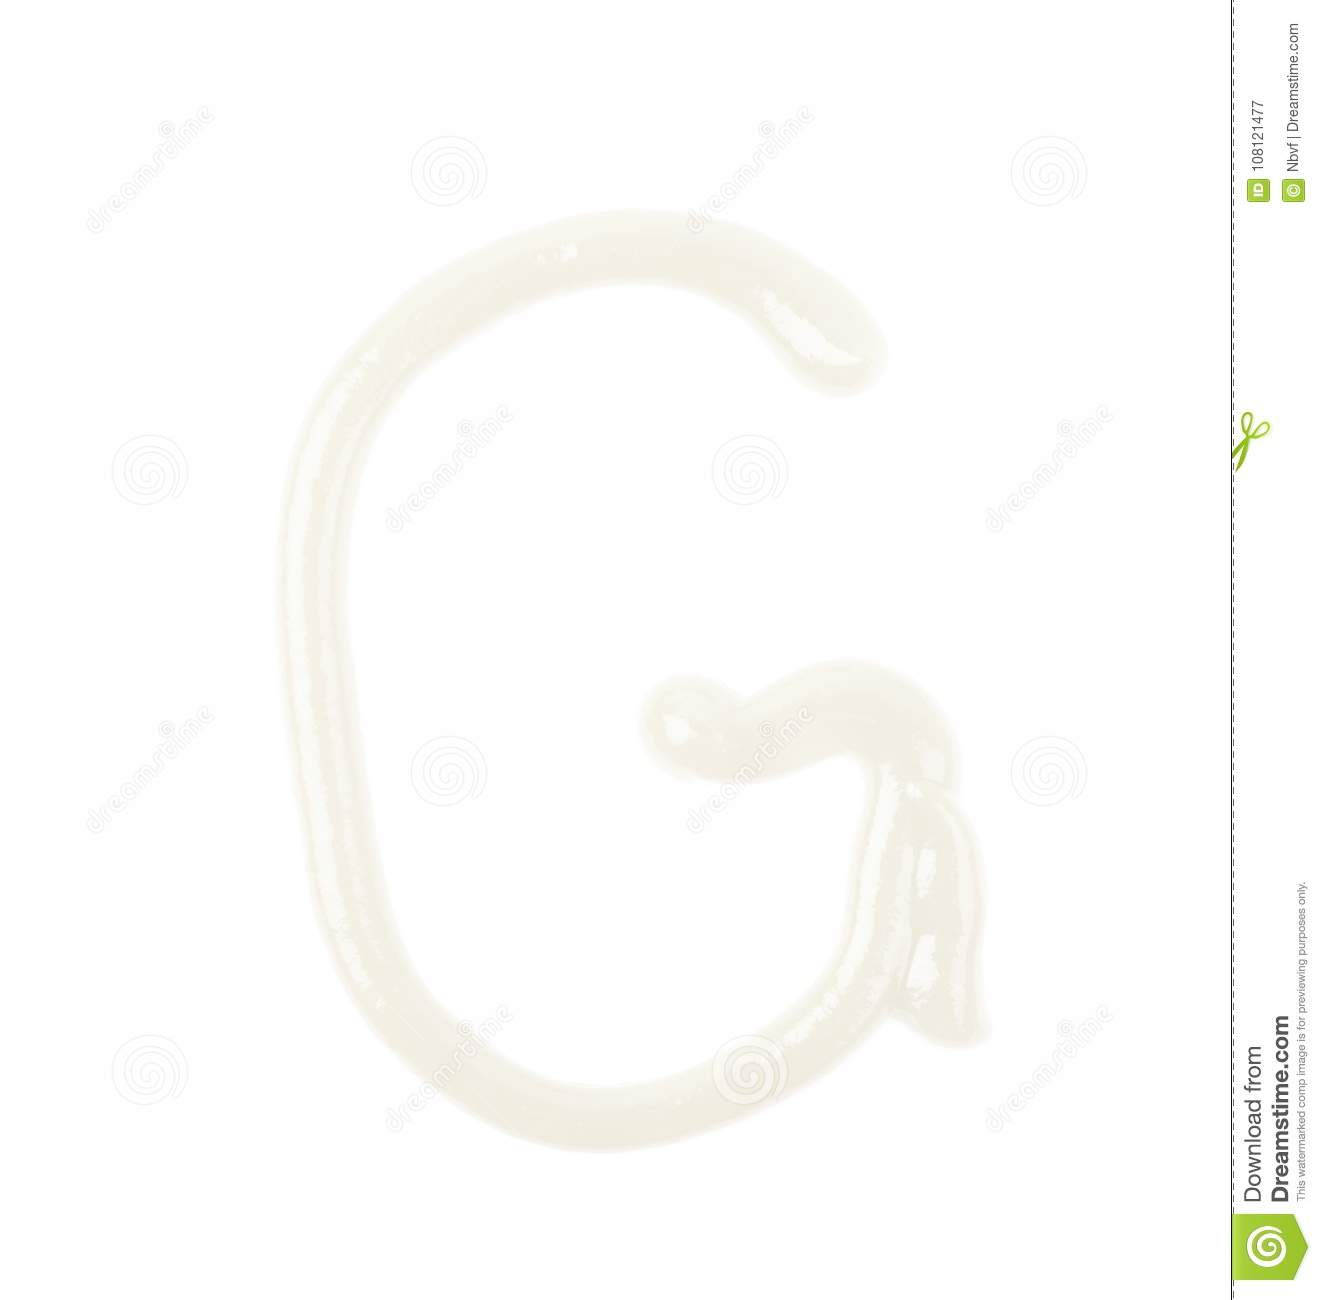 Single Letter Made Of Sauce Isolated Stock Image Image Of Letter